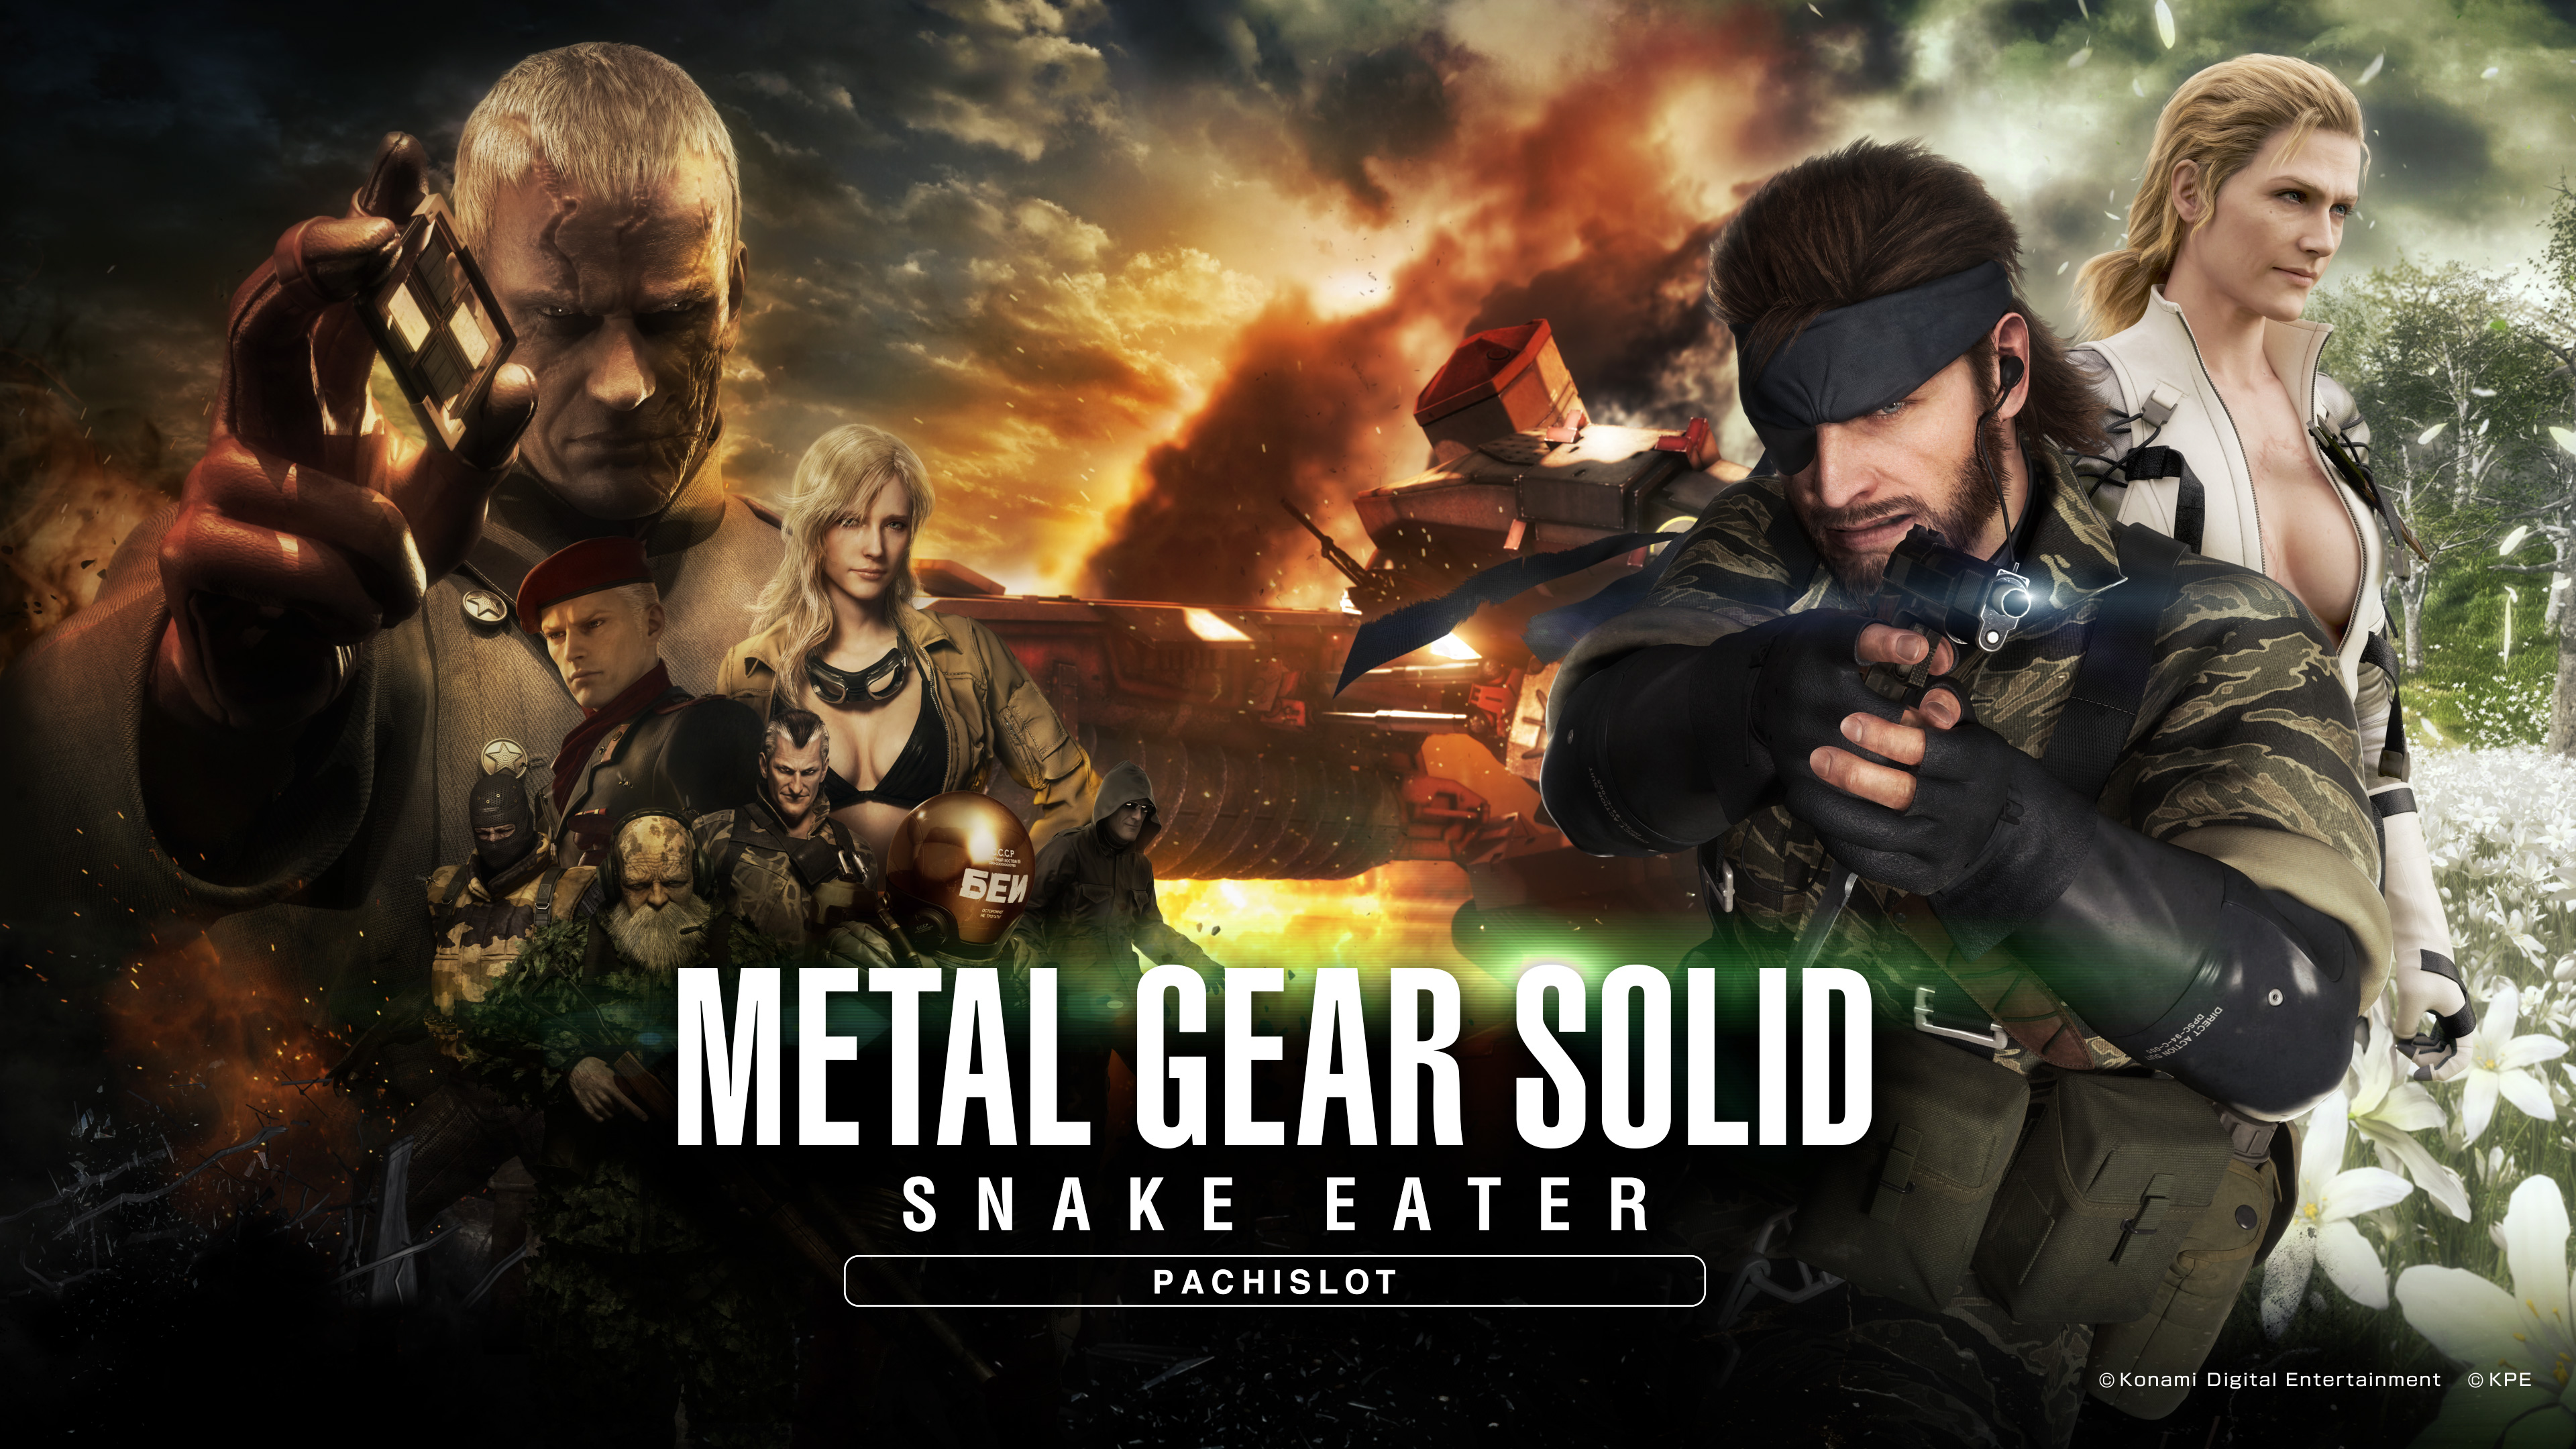 MGS-Snake-Eater-Pachislot-Wallpaper-PC-2